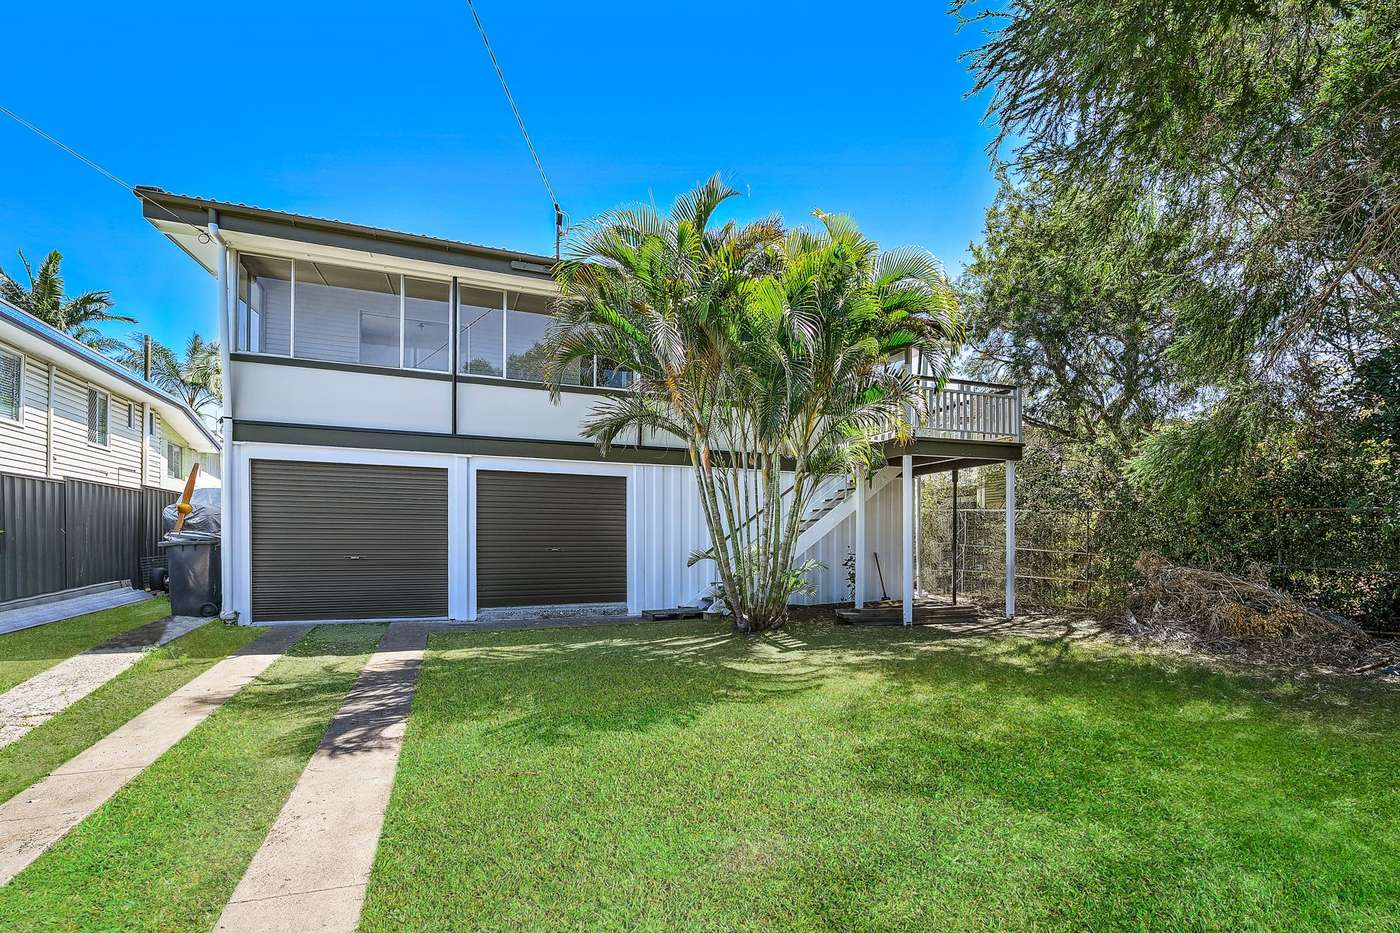 Main view of Homely house listing, 19 Kakawan Street, Boondall, QLD 4034